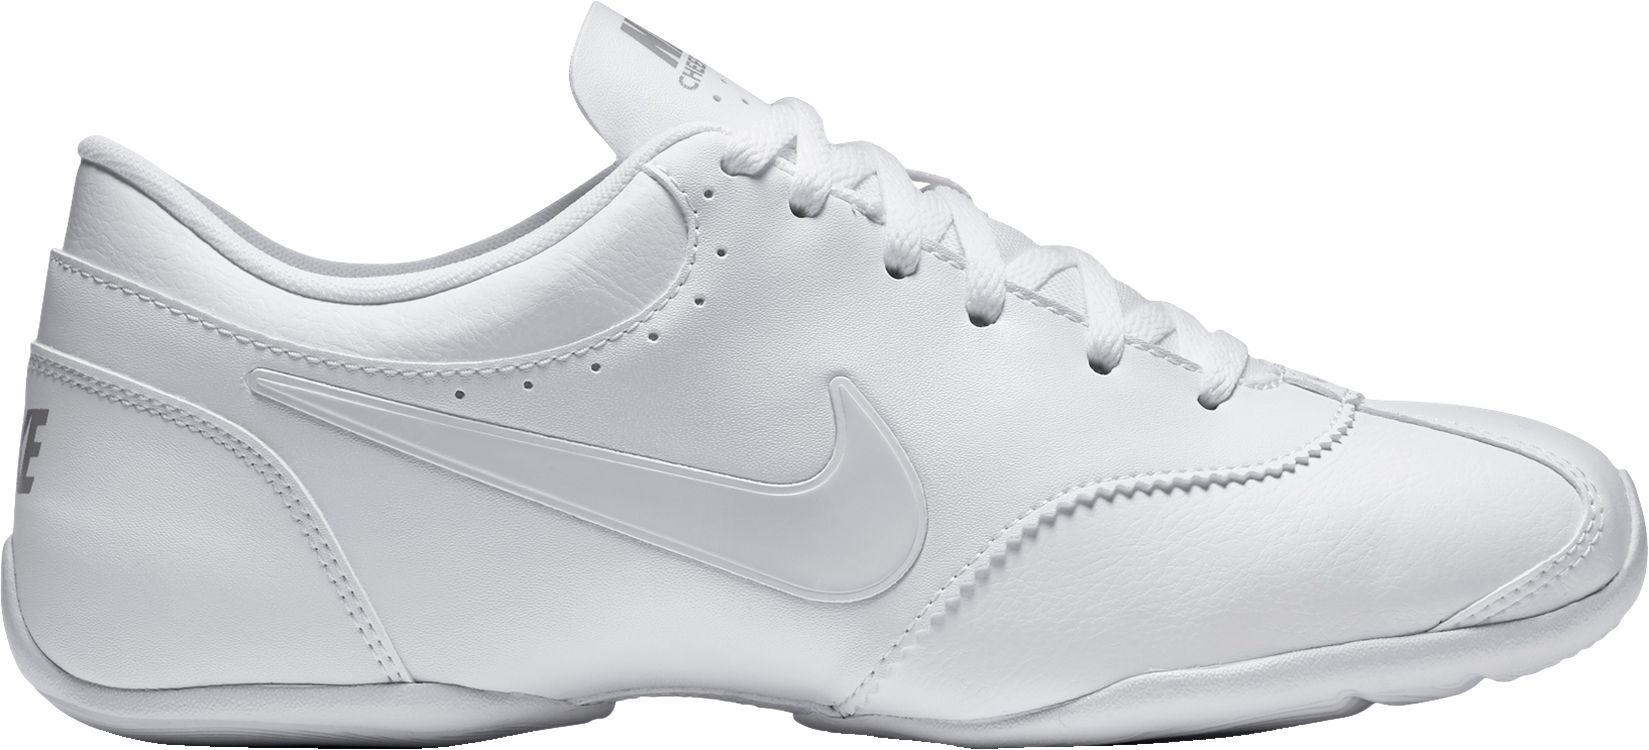 264c275a4e4 Lyst - Nike Cheer Unite Cheerleading Shoes in White